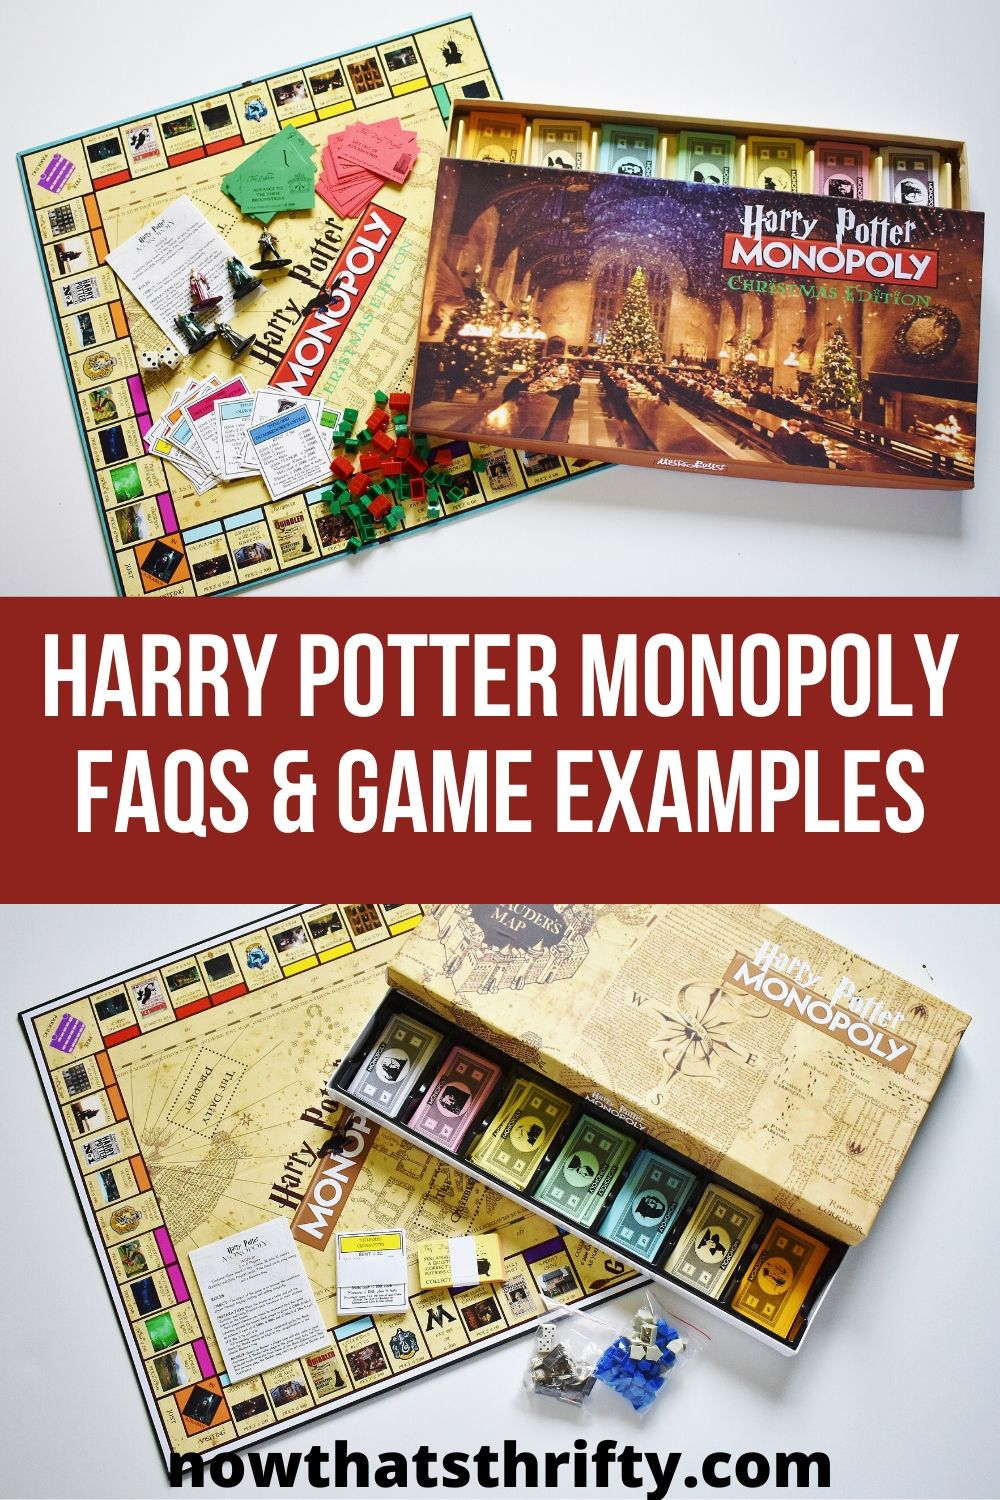 Harry Potter Monopoly : Target